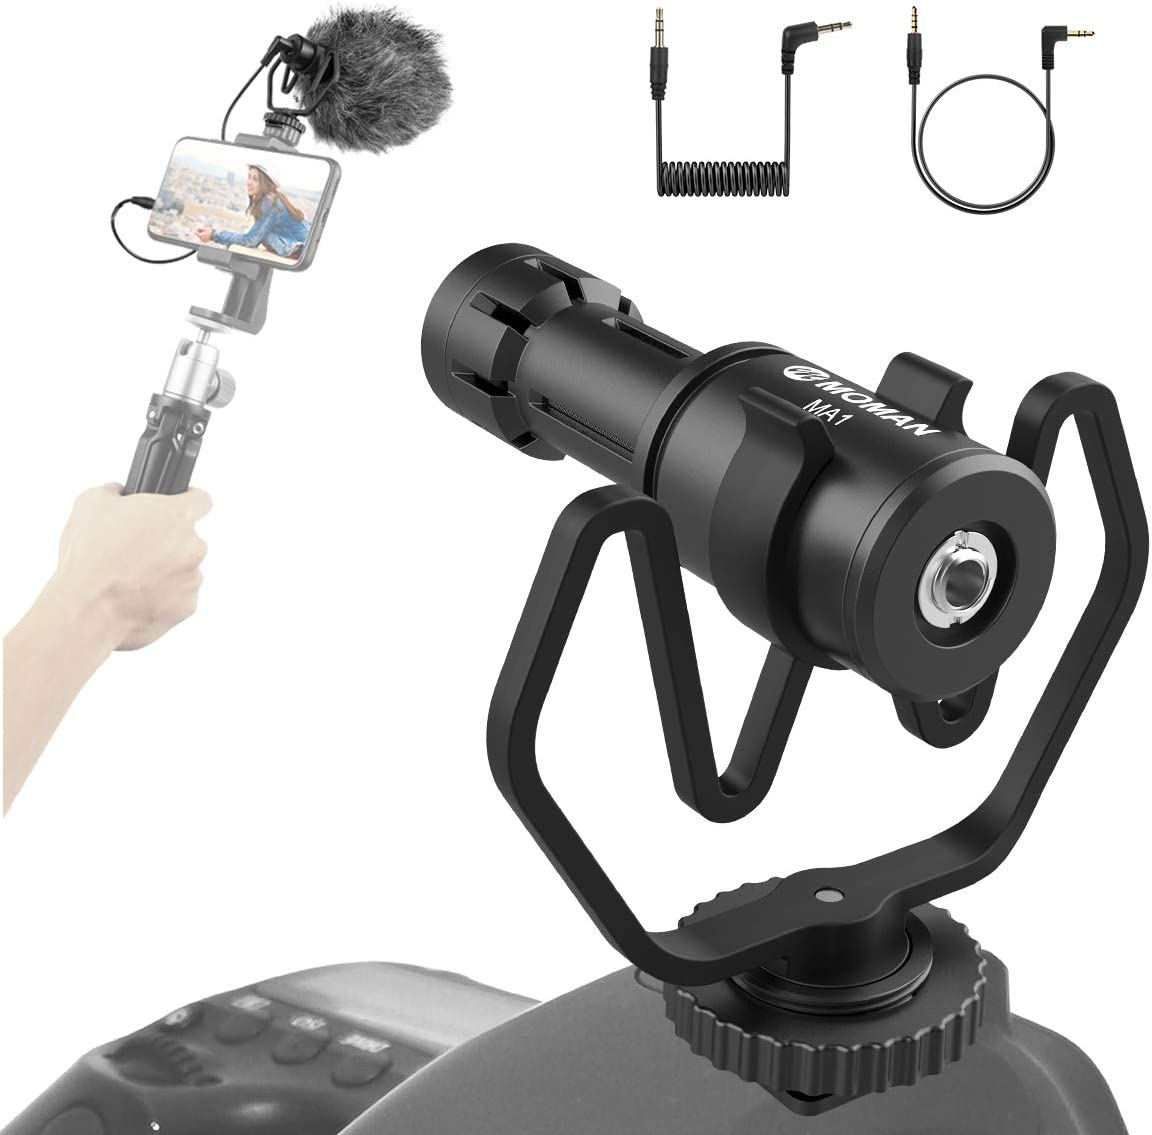 Moman MA1Camera Microphone Cardioid Condenser Shotgun Microphone with Shock Mount for Smartphone Laptop DSLR with 3.5mm Jack for Vlogging Interview YouTube Recording